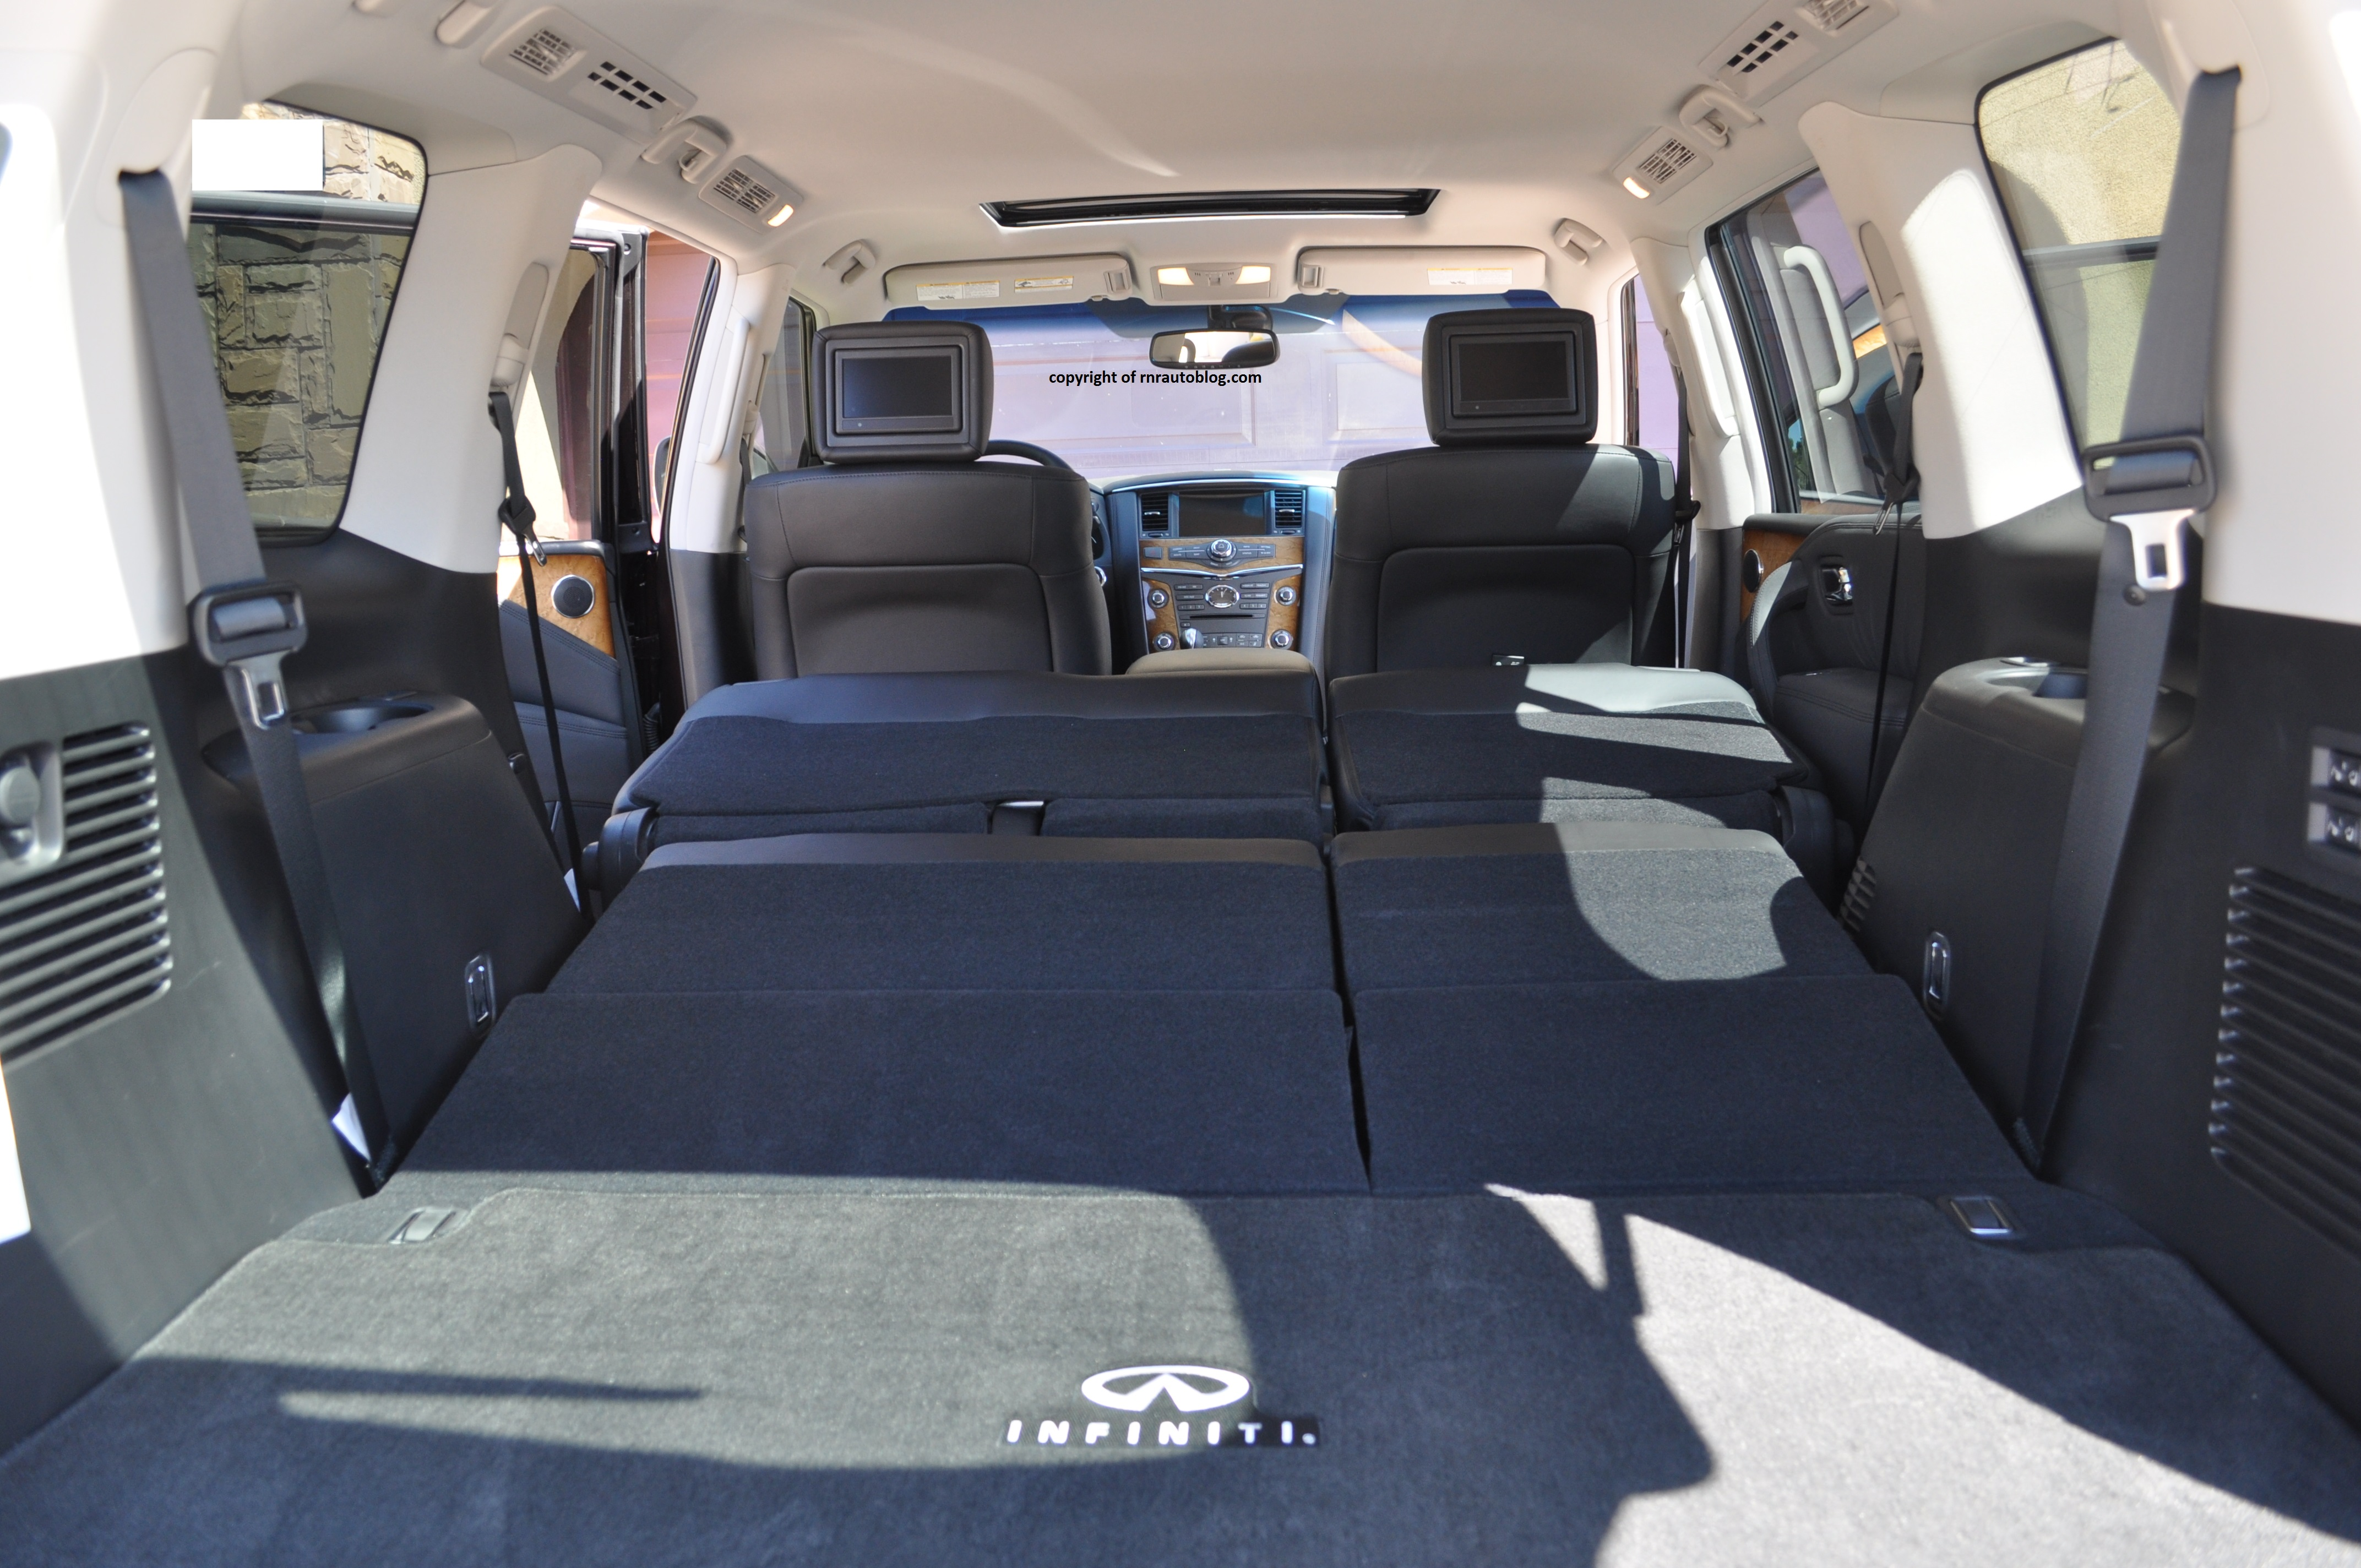 2007 infiniti qx56 interior images hd cars wallpaper 2013 infiniti qx56 review rnr automotive blog infiniti really did its homework with the second generation vanachro Images